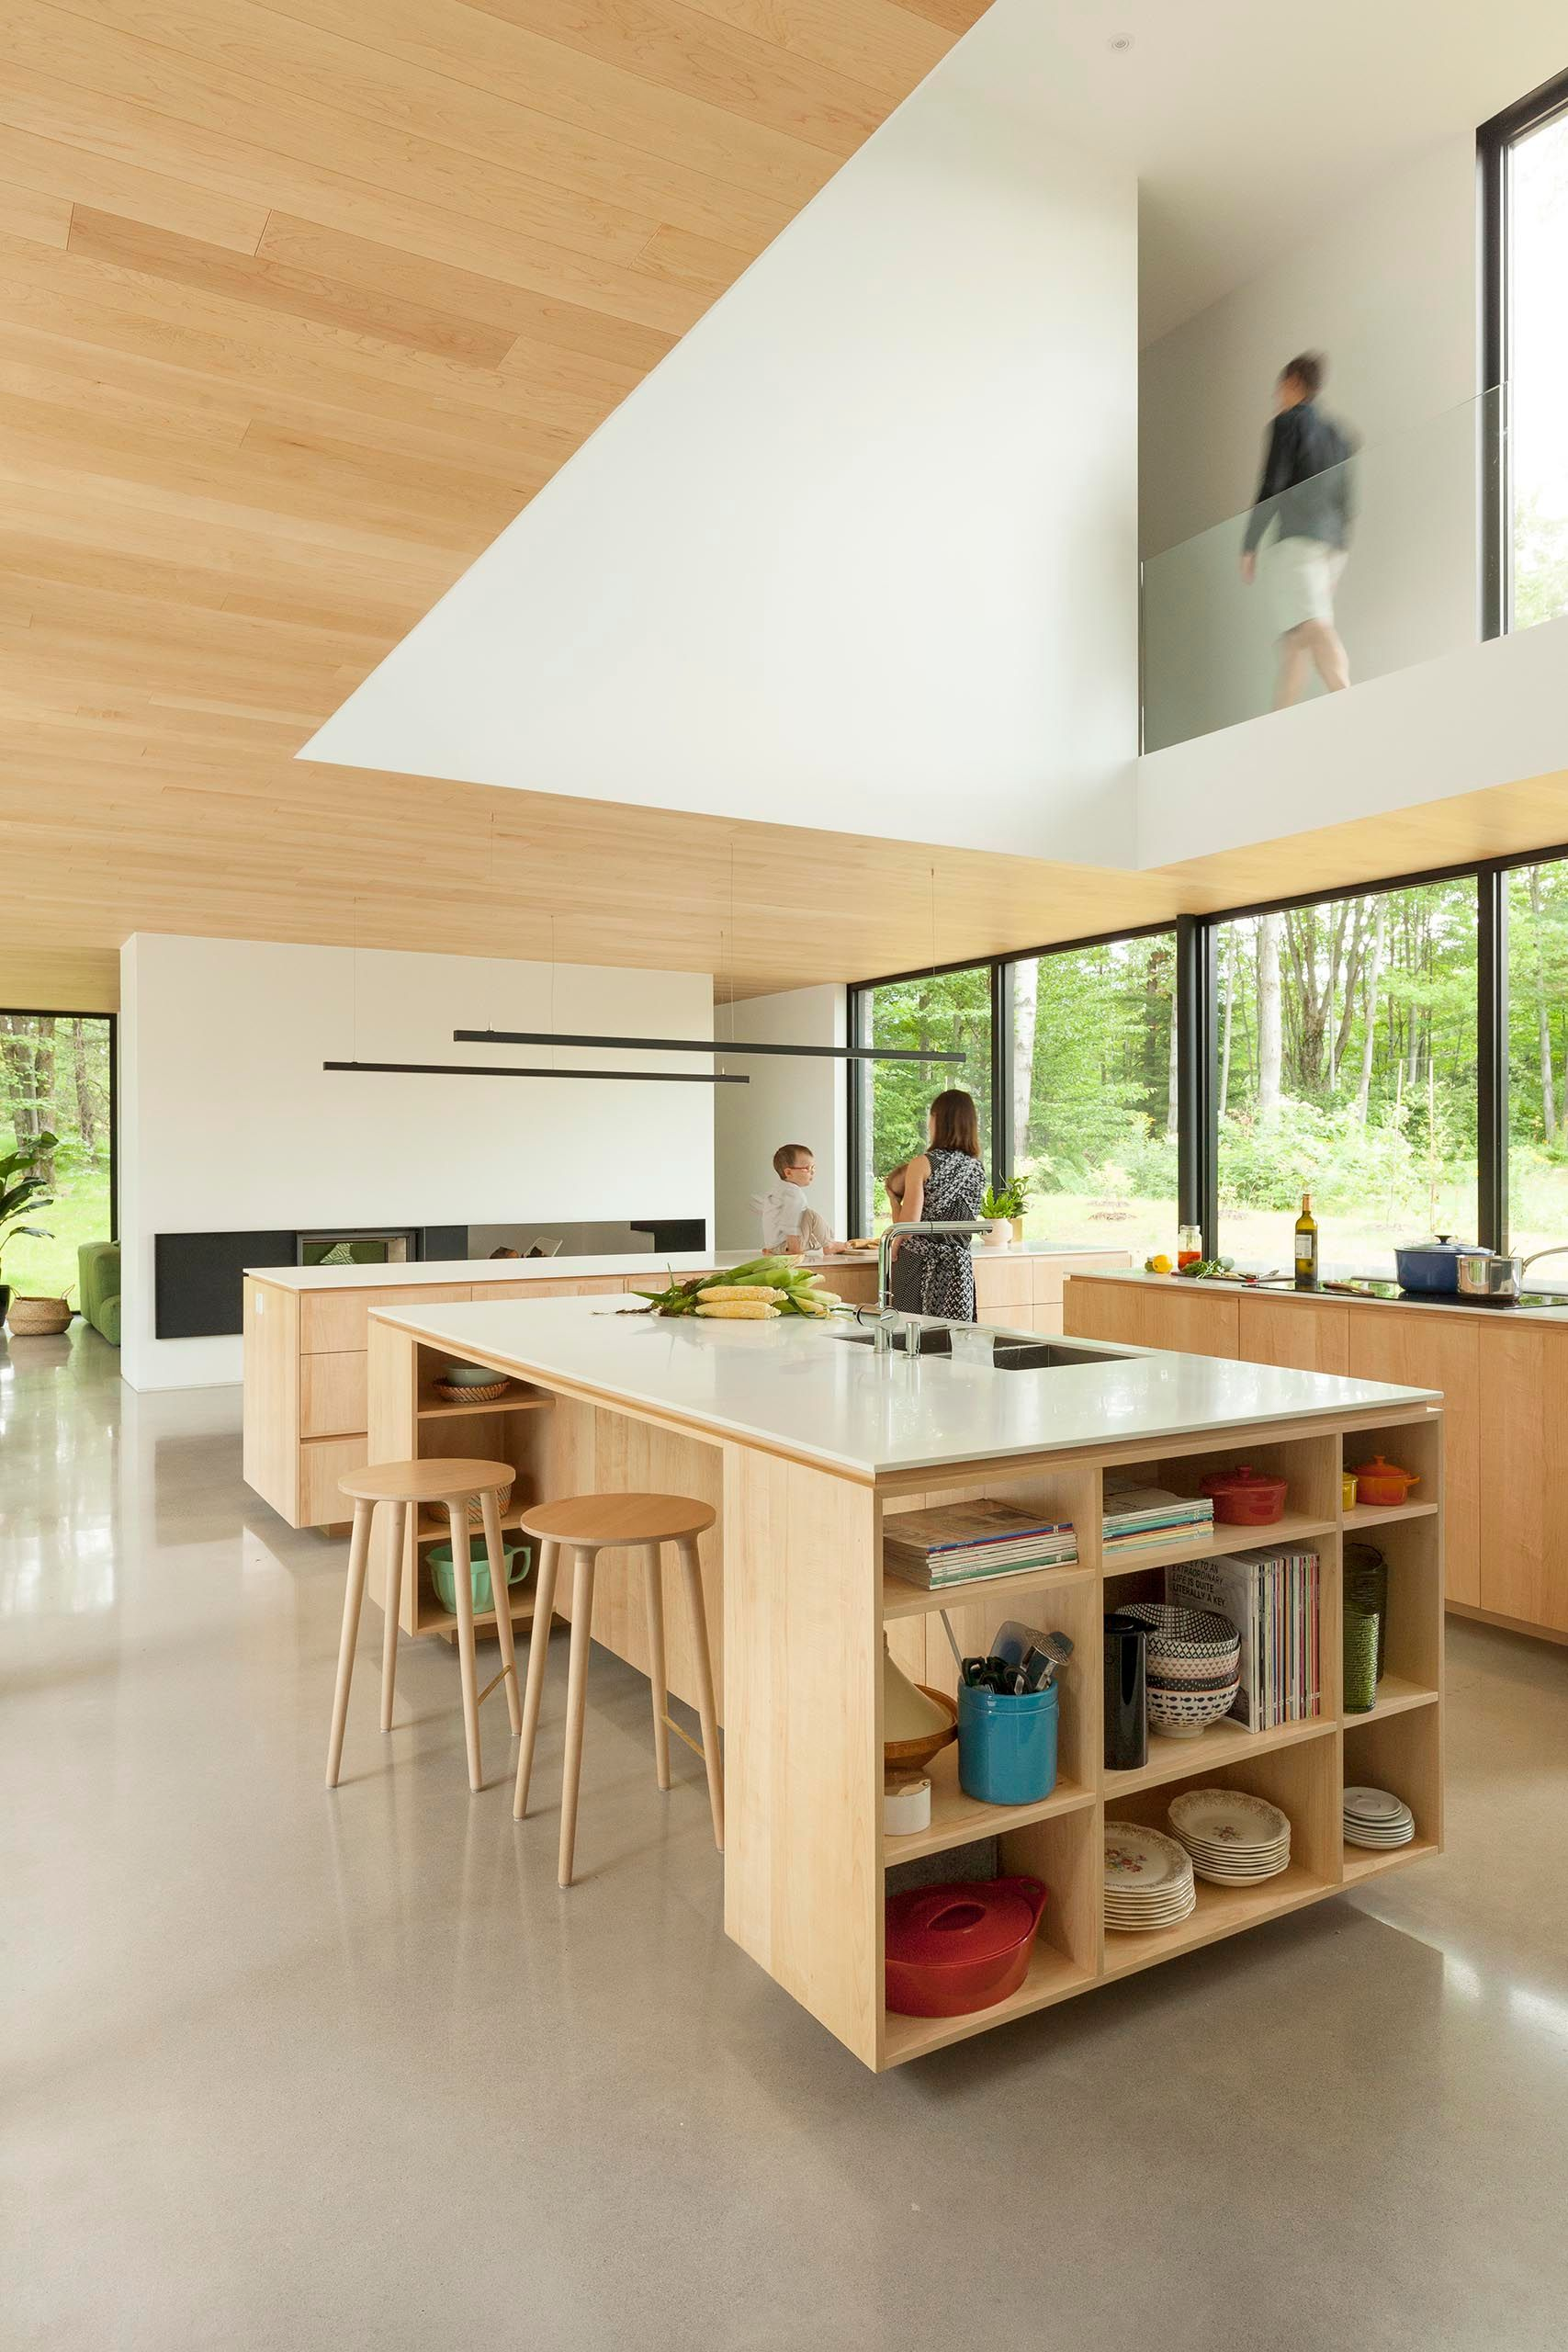 This Kitchen Design Has Three Islands To Maximize Cabinet ...